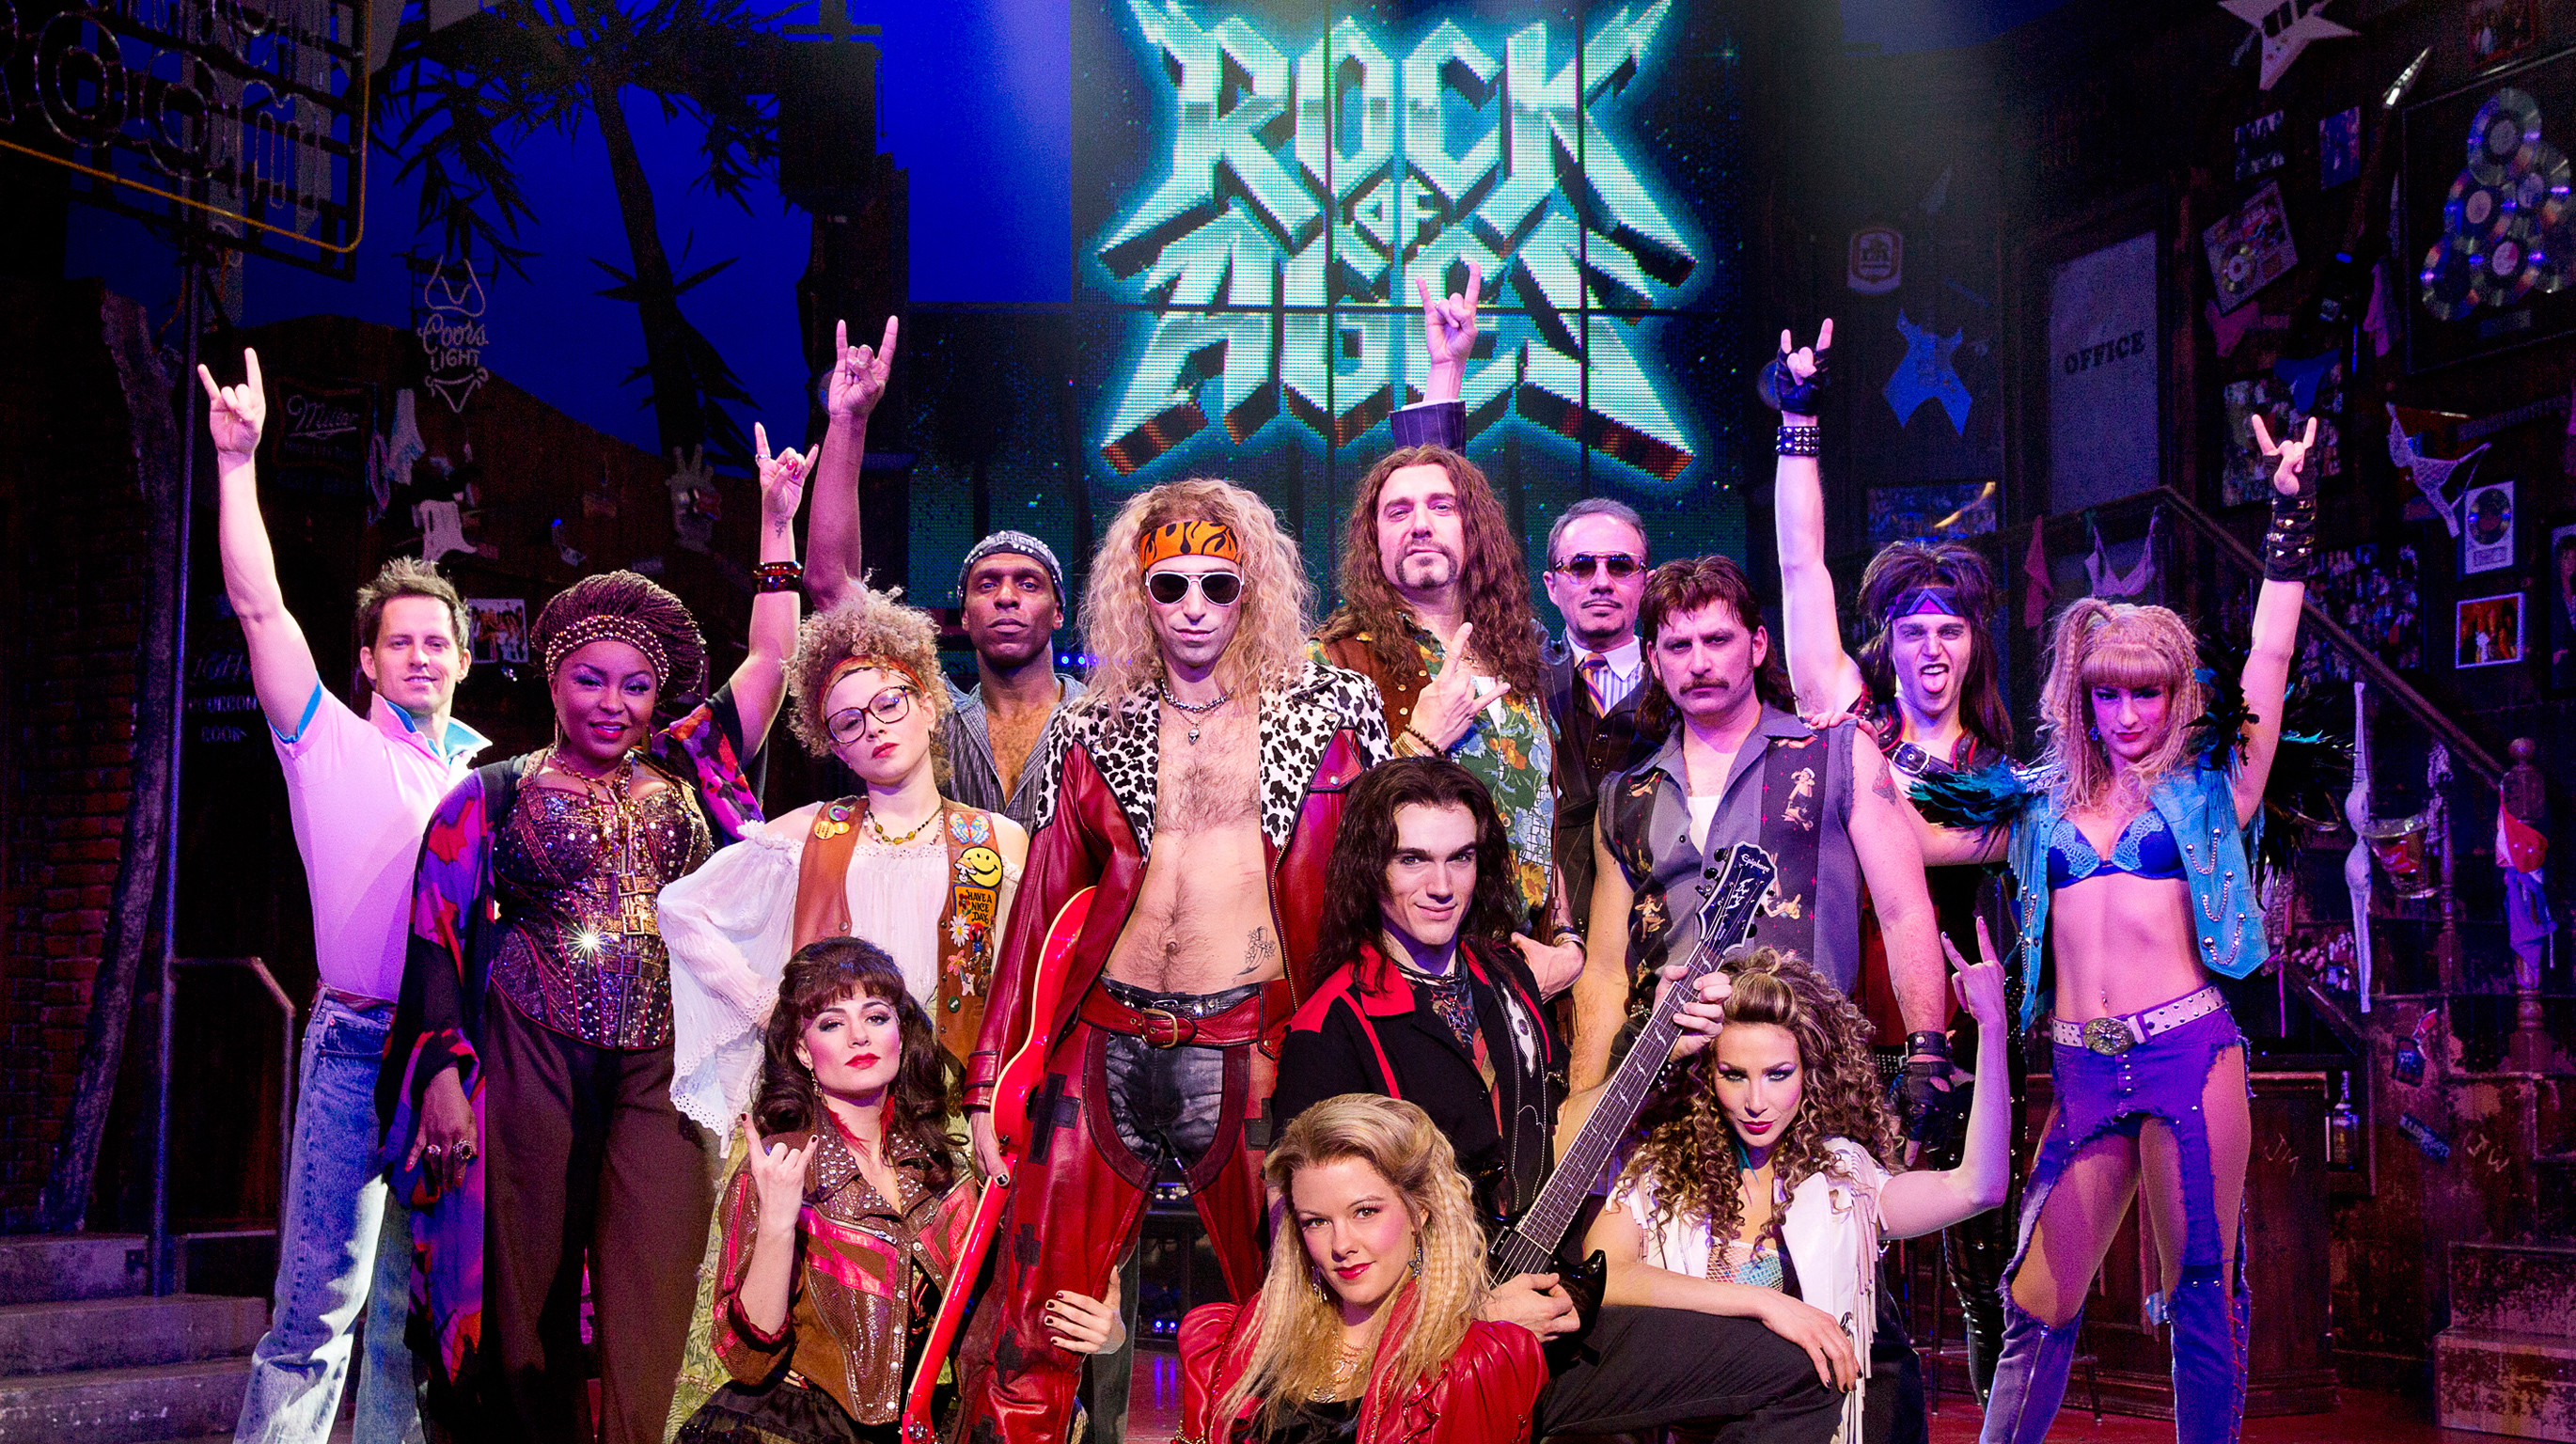 rock of ages on broadway: tickets, reviews and video